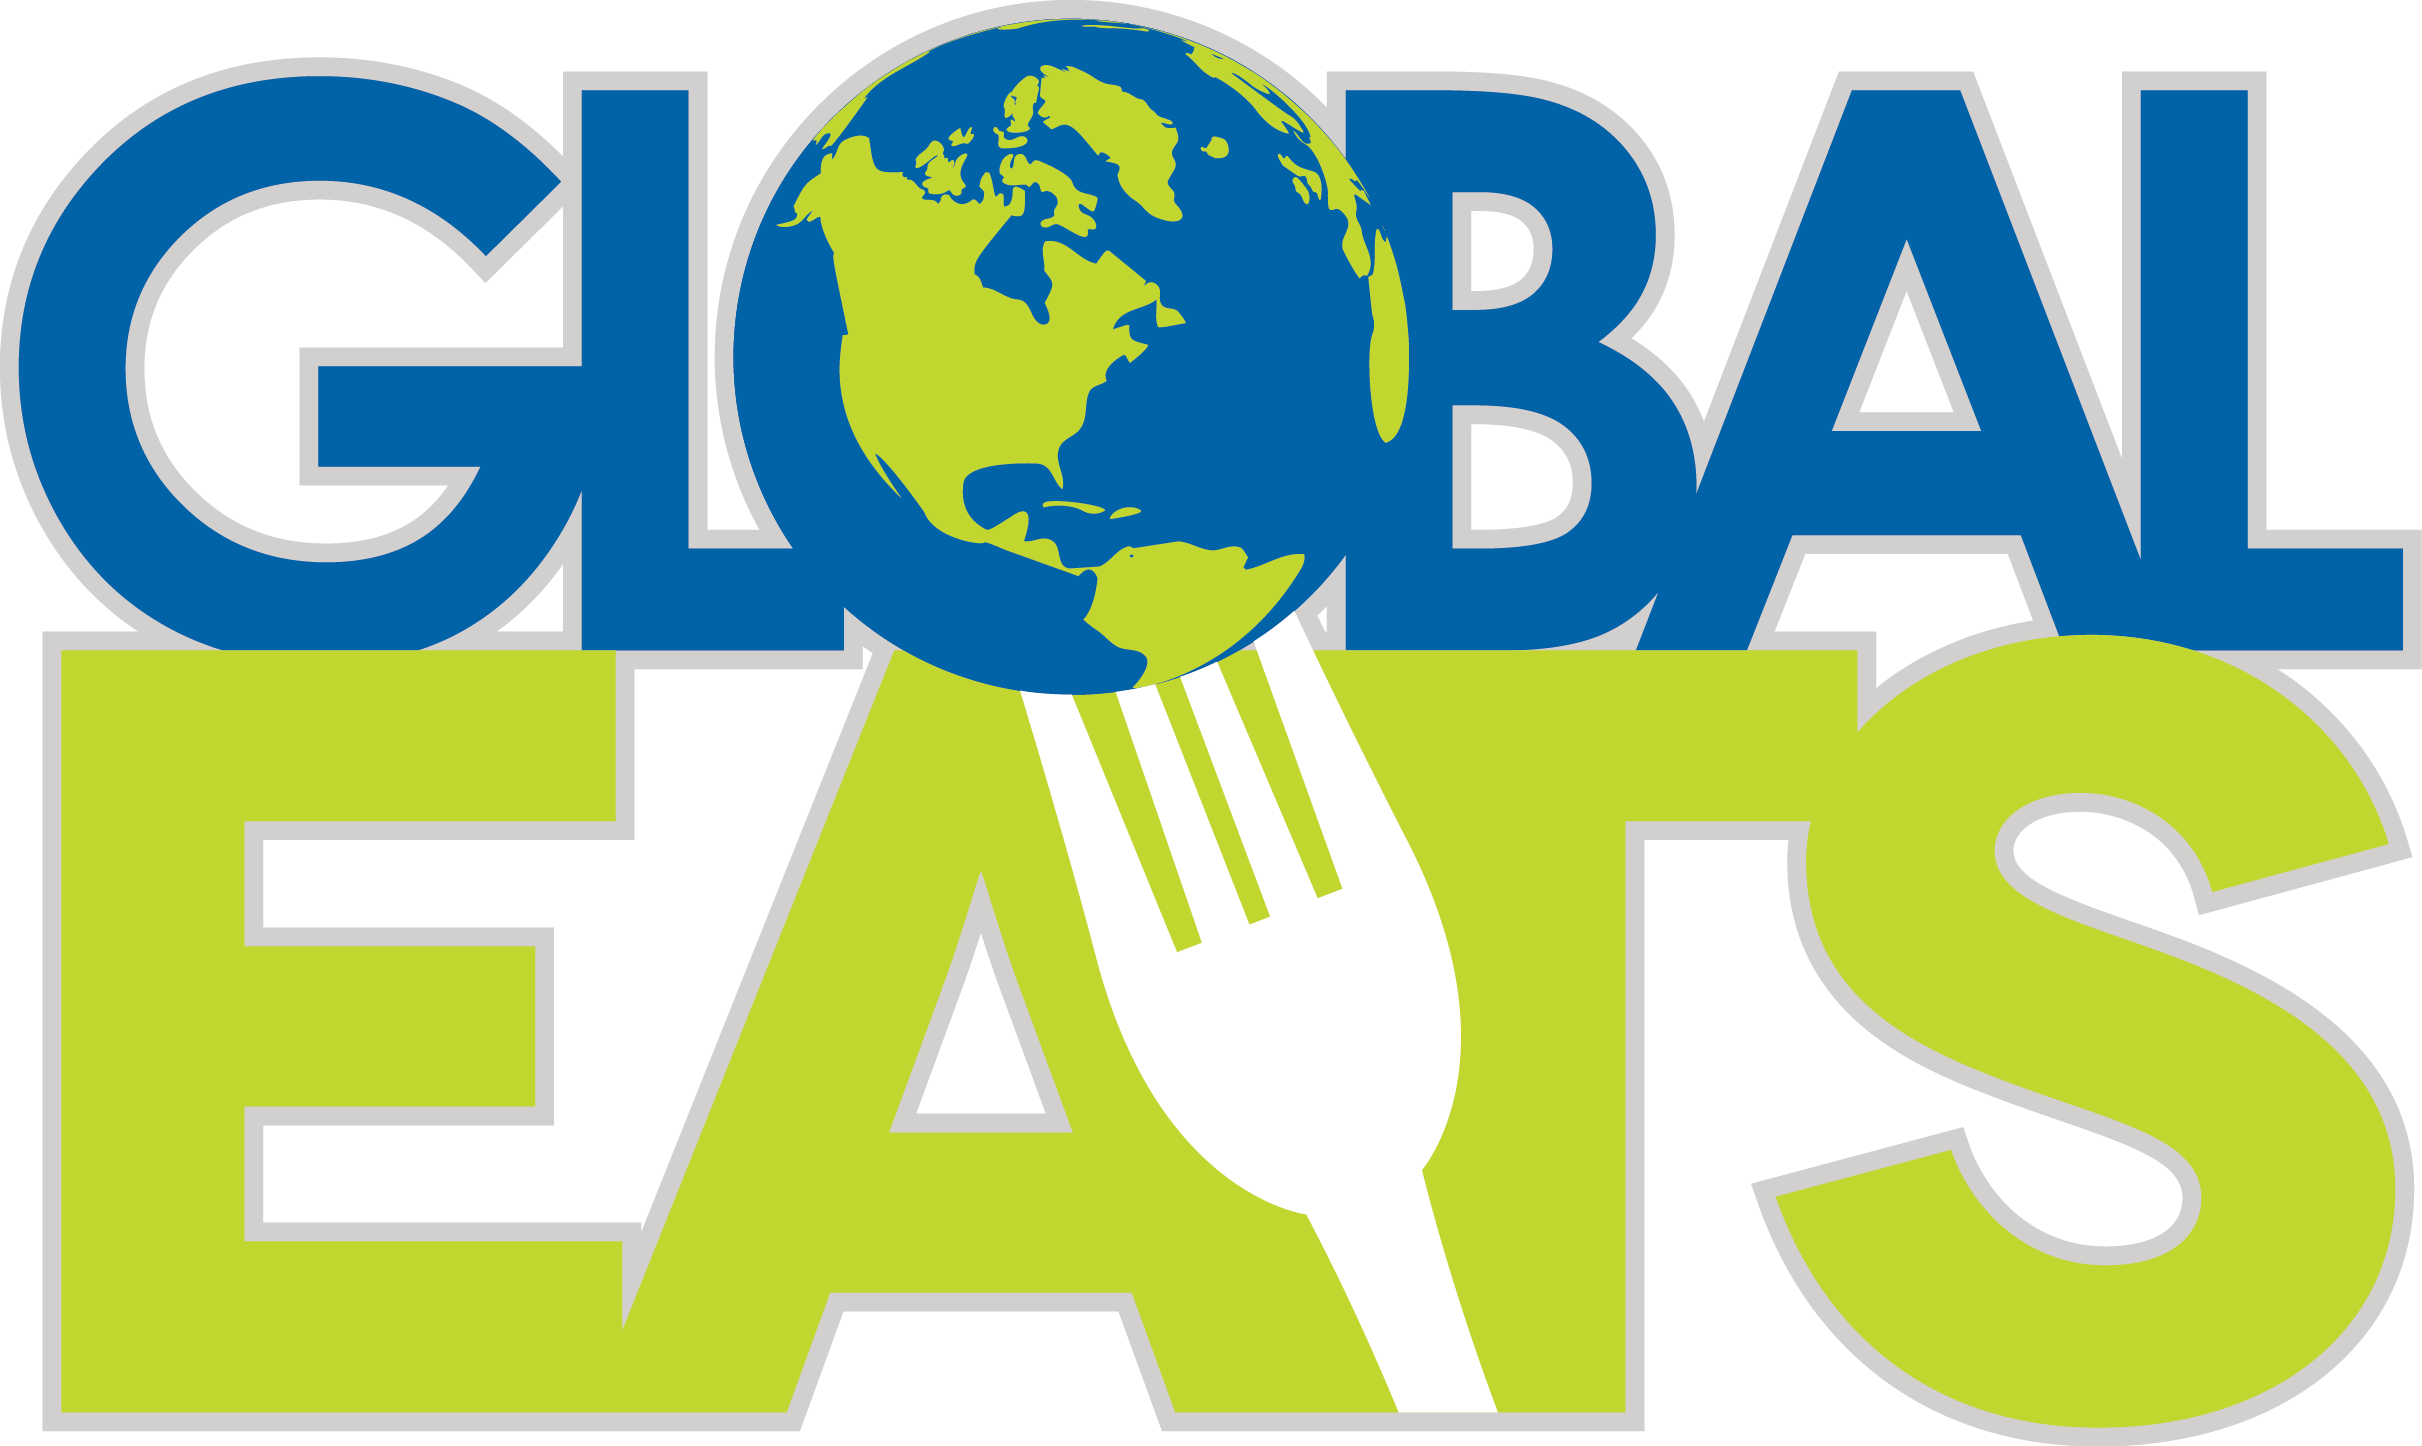 global eats logo.png